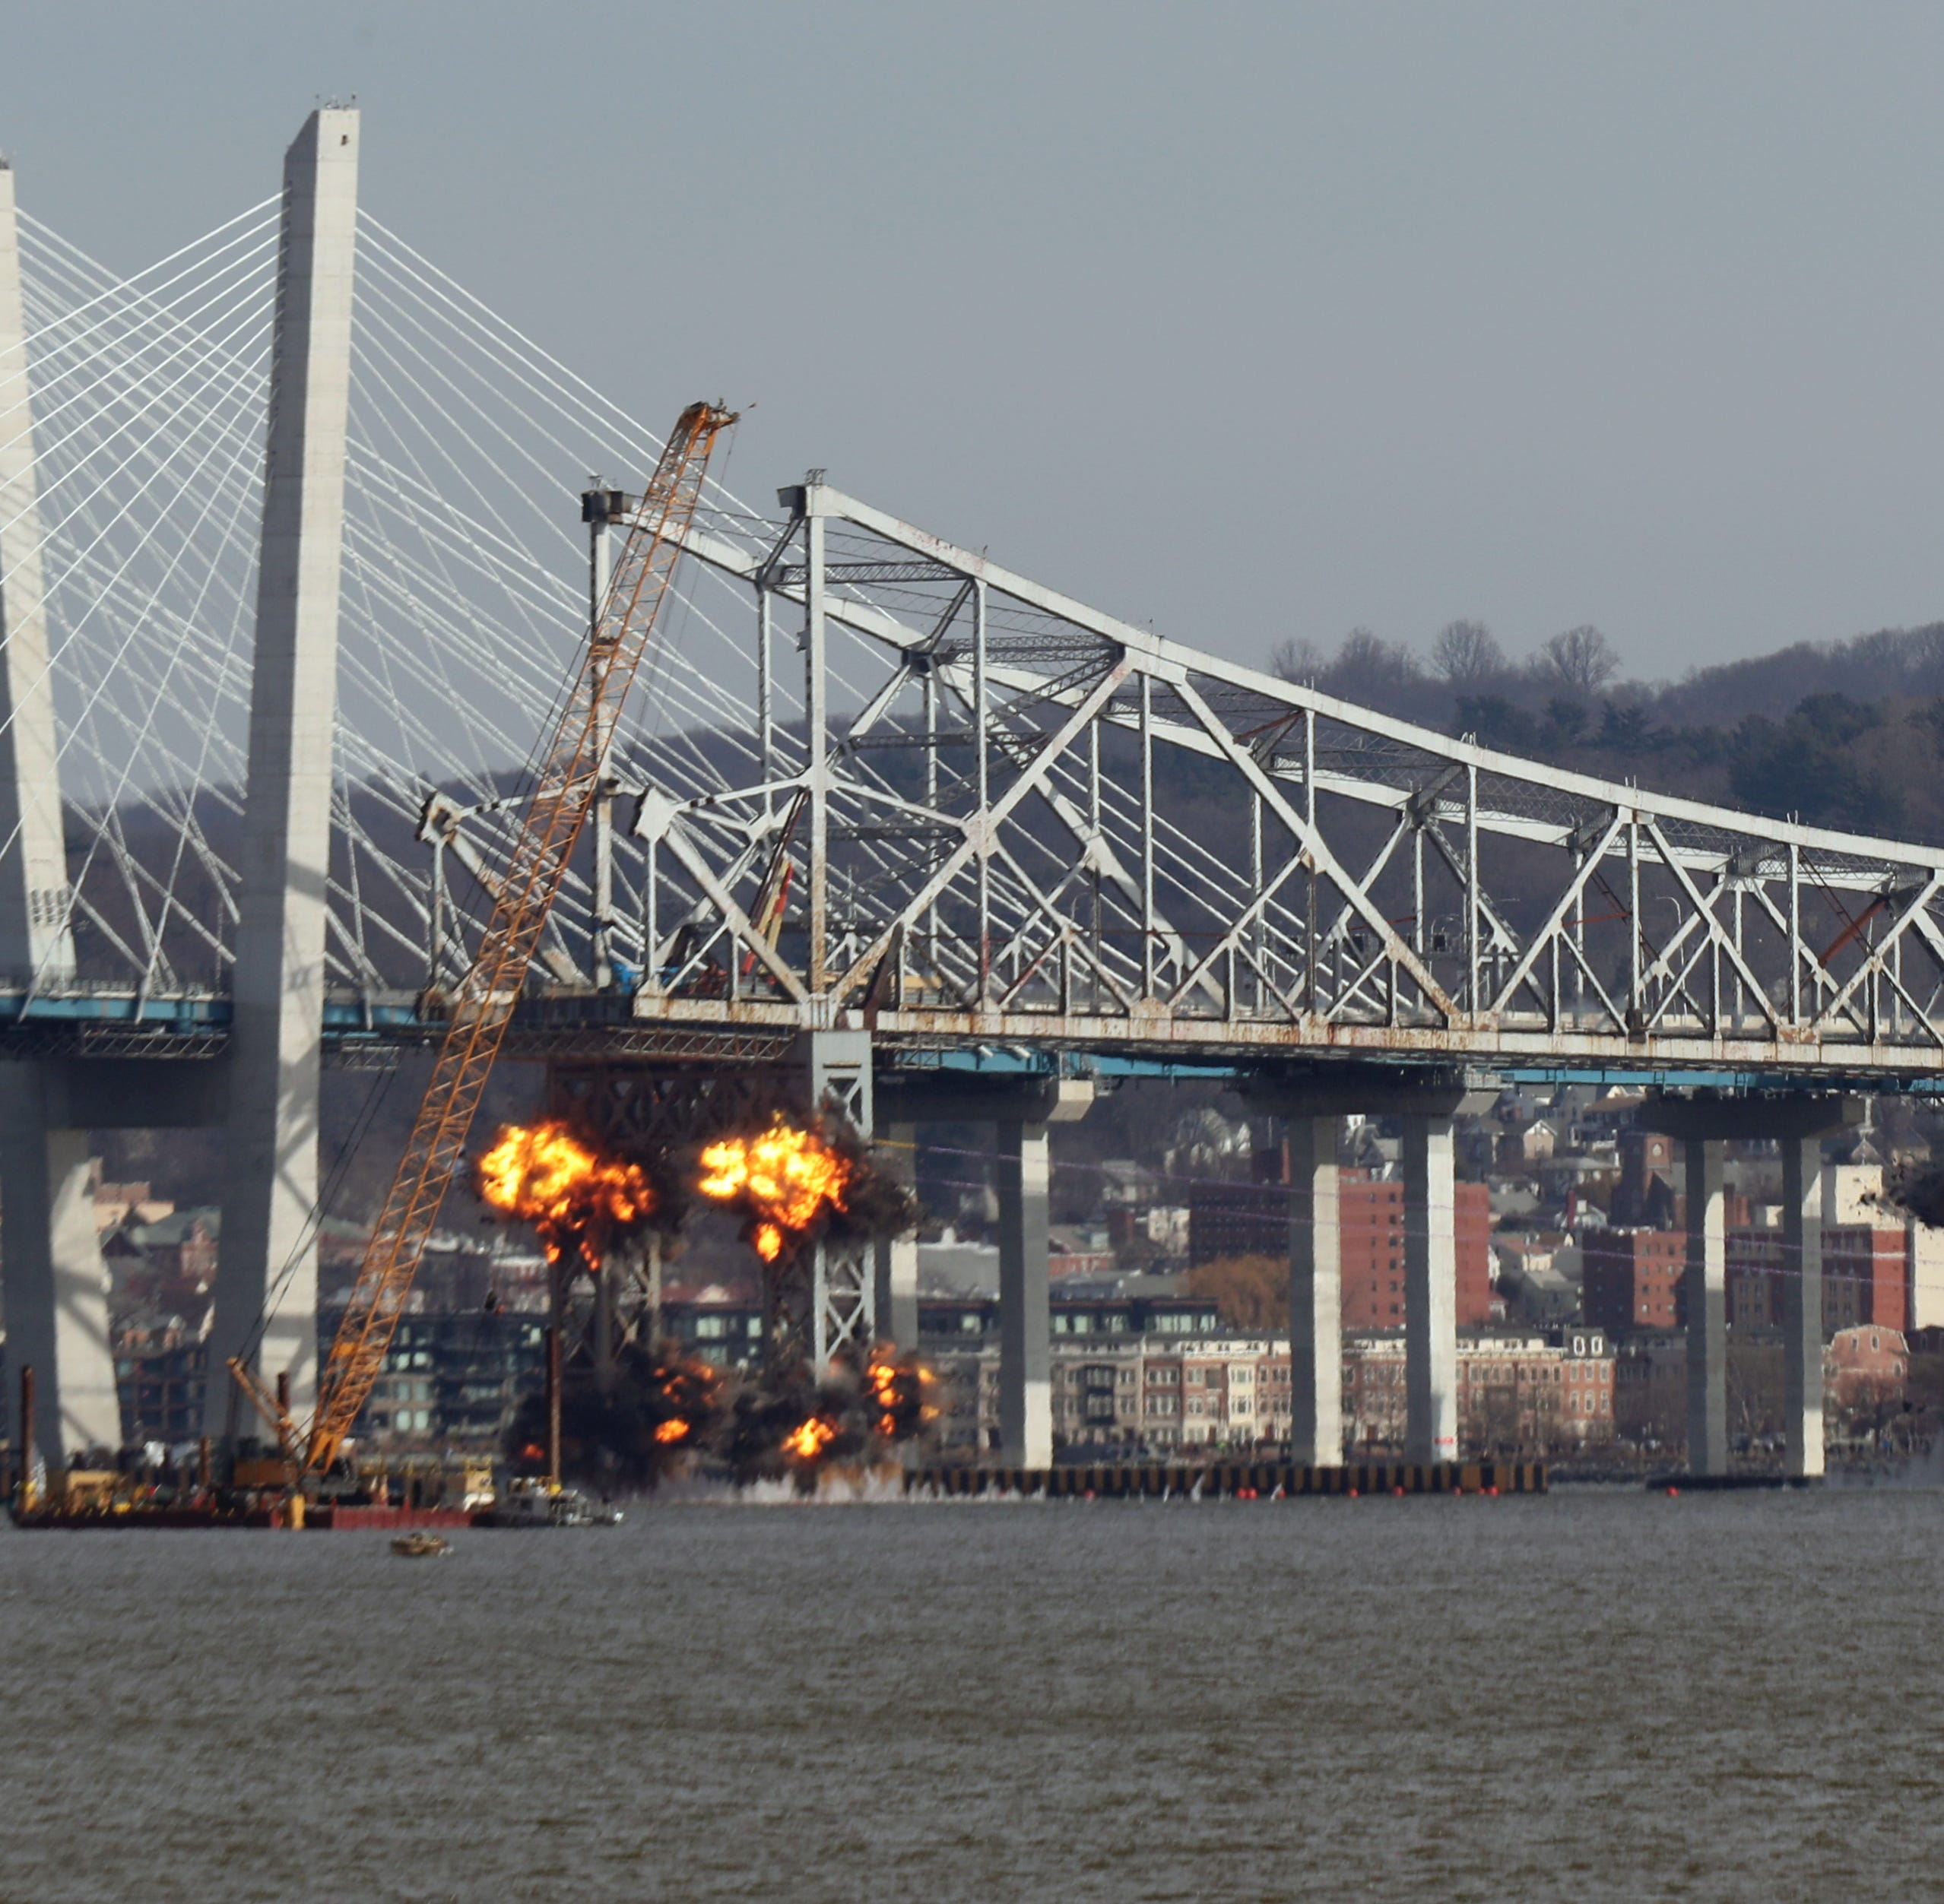 Tappan Zee Bridge demolition: How they got that shot